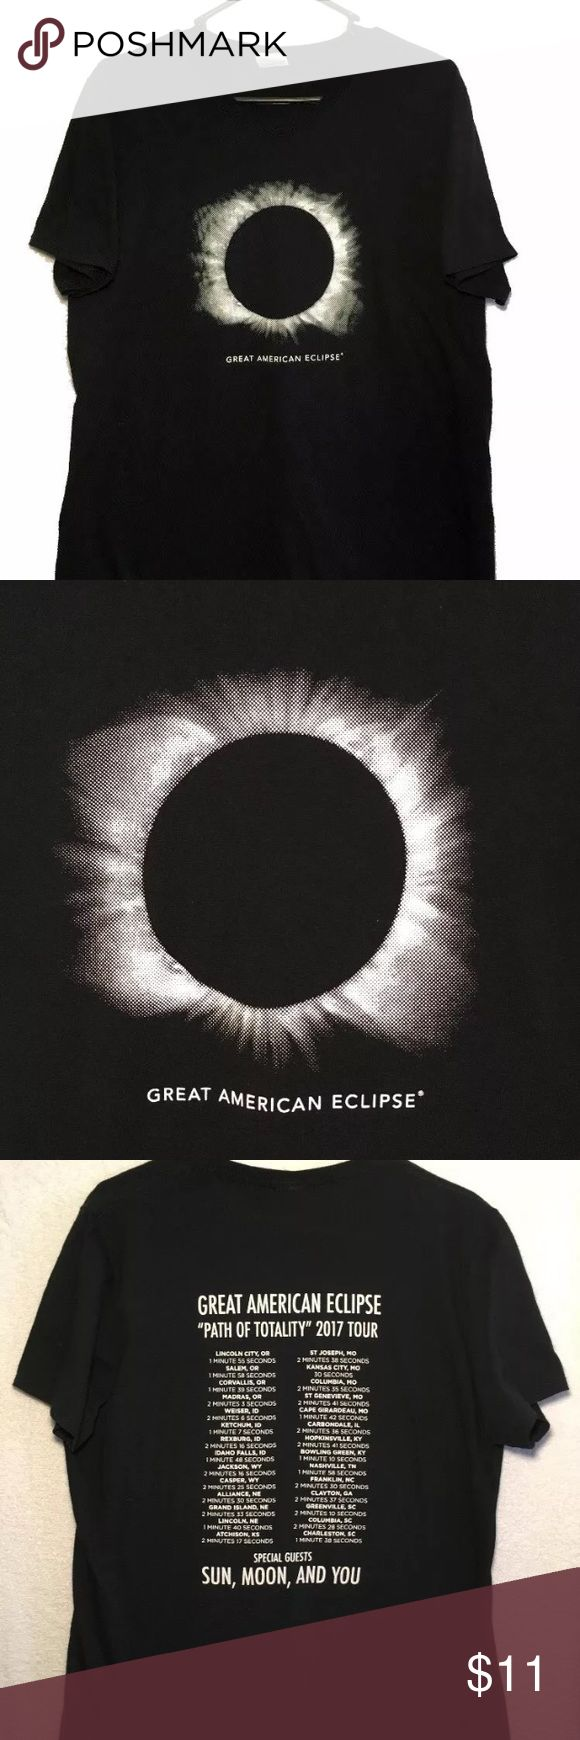 """Total Eclipse 2017 T-Shirt Mens Large Don't miss out on this Great American Eclipse t-shirt that was done like a concert tour shirt. The backside has the places across the USA that experienced the most darkness. Mens size large. This """"Path of Totality"""" 2017 tour started in Lincoln City, Oregon and ended in Charleston, South Carolina. Front features an image of an eclipse. Makes a great momento from that once in a lifetime event.  Measurements:  armpit to armpit: 21 inches length: 27.5…"""